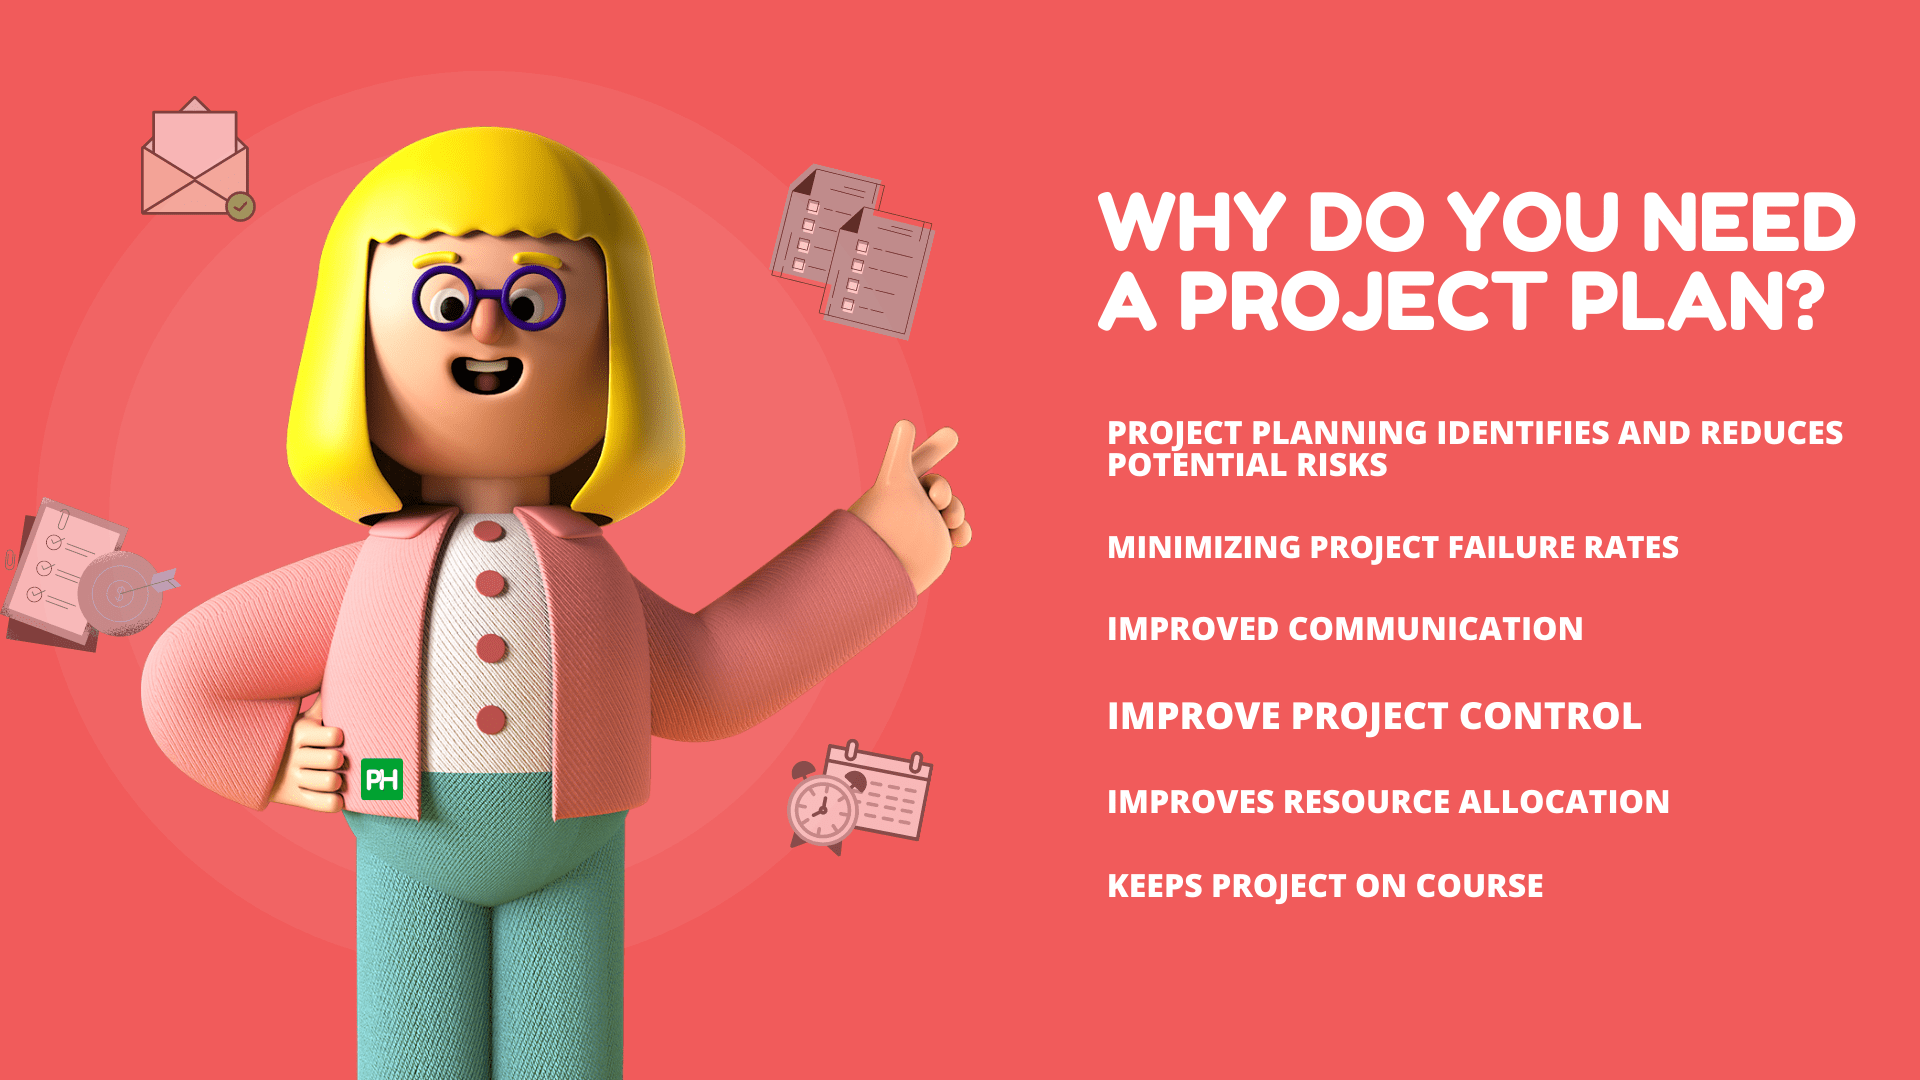 Why Do You Need A Project Plan?